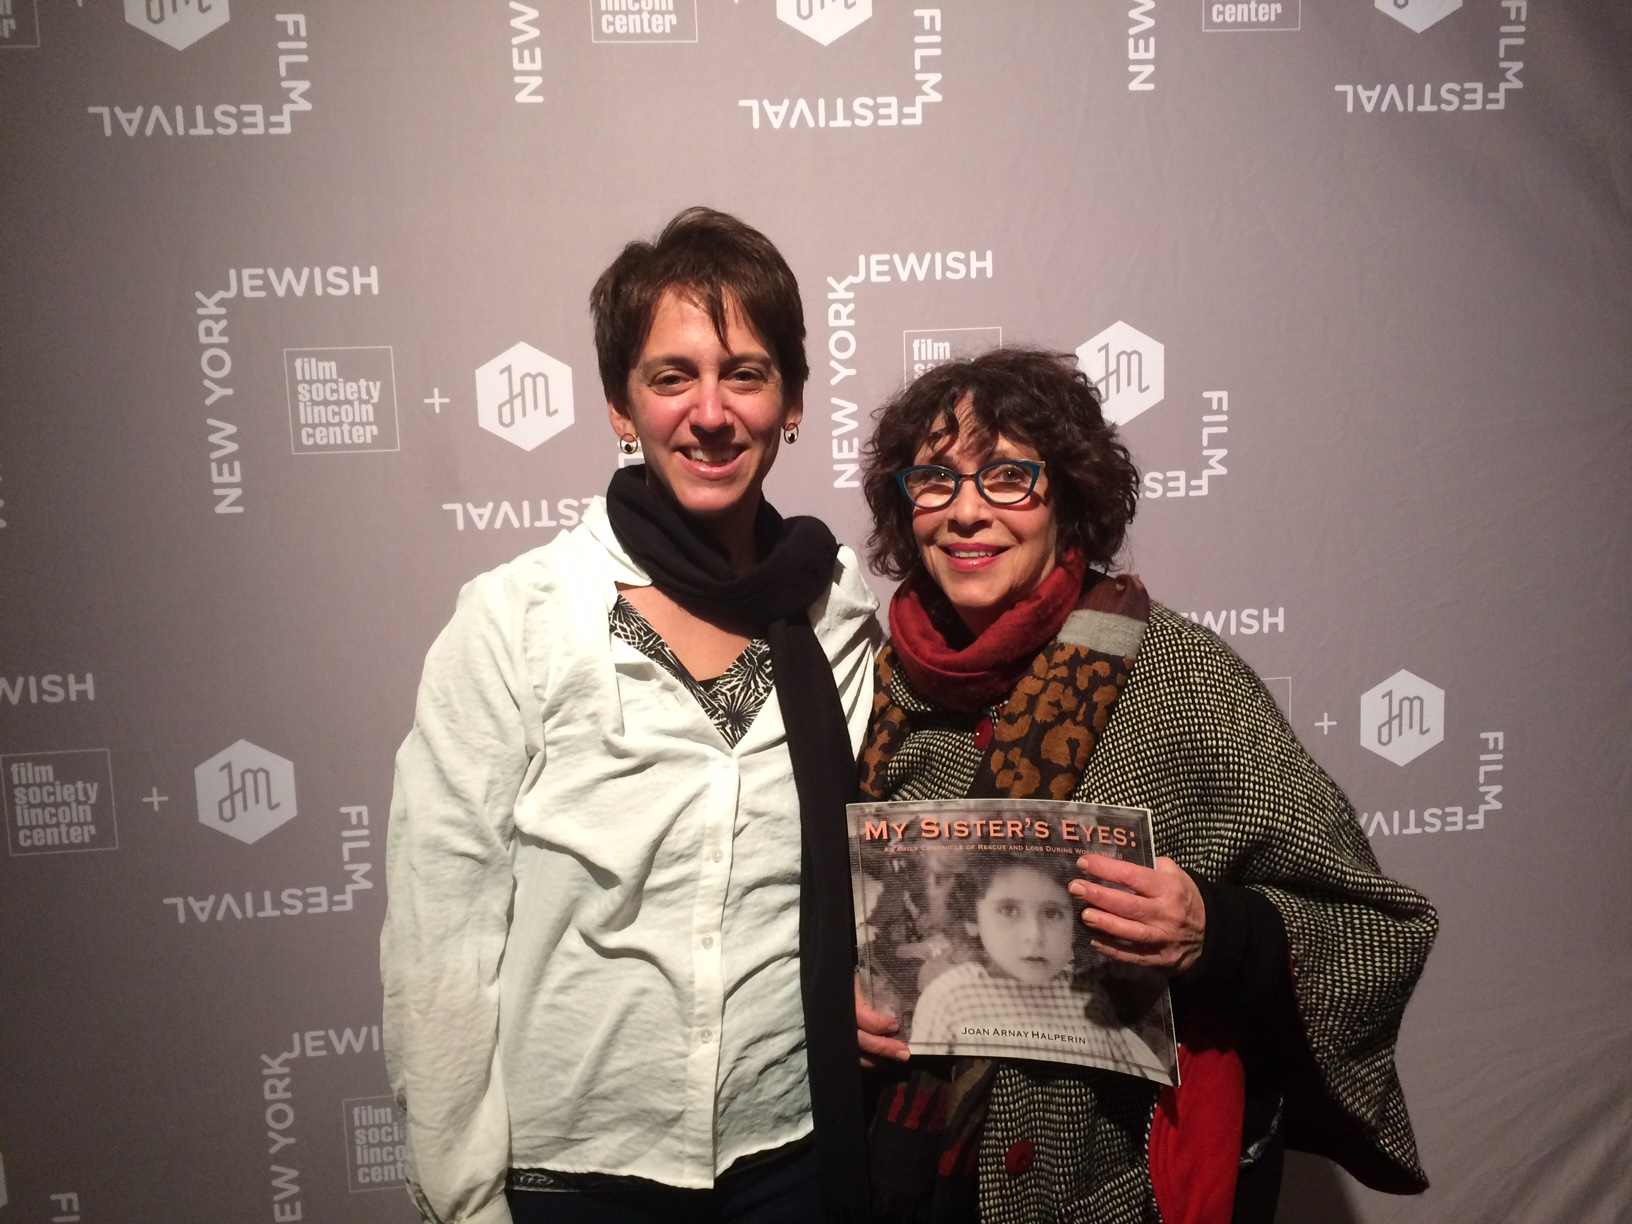 Elizabeth Rynecki and Joan Arnay Halperin, January 16, 2019